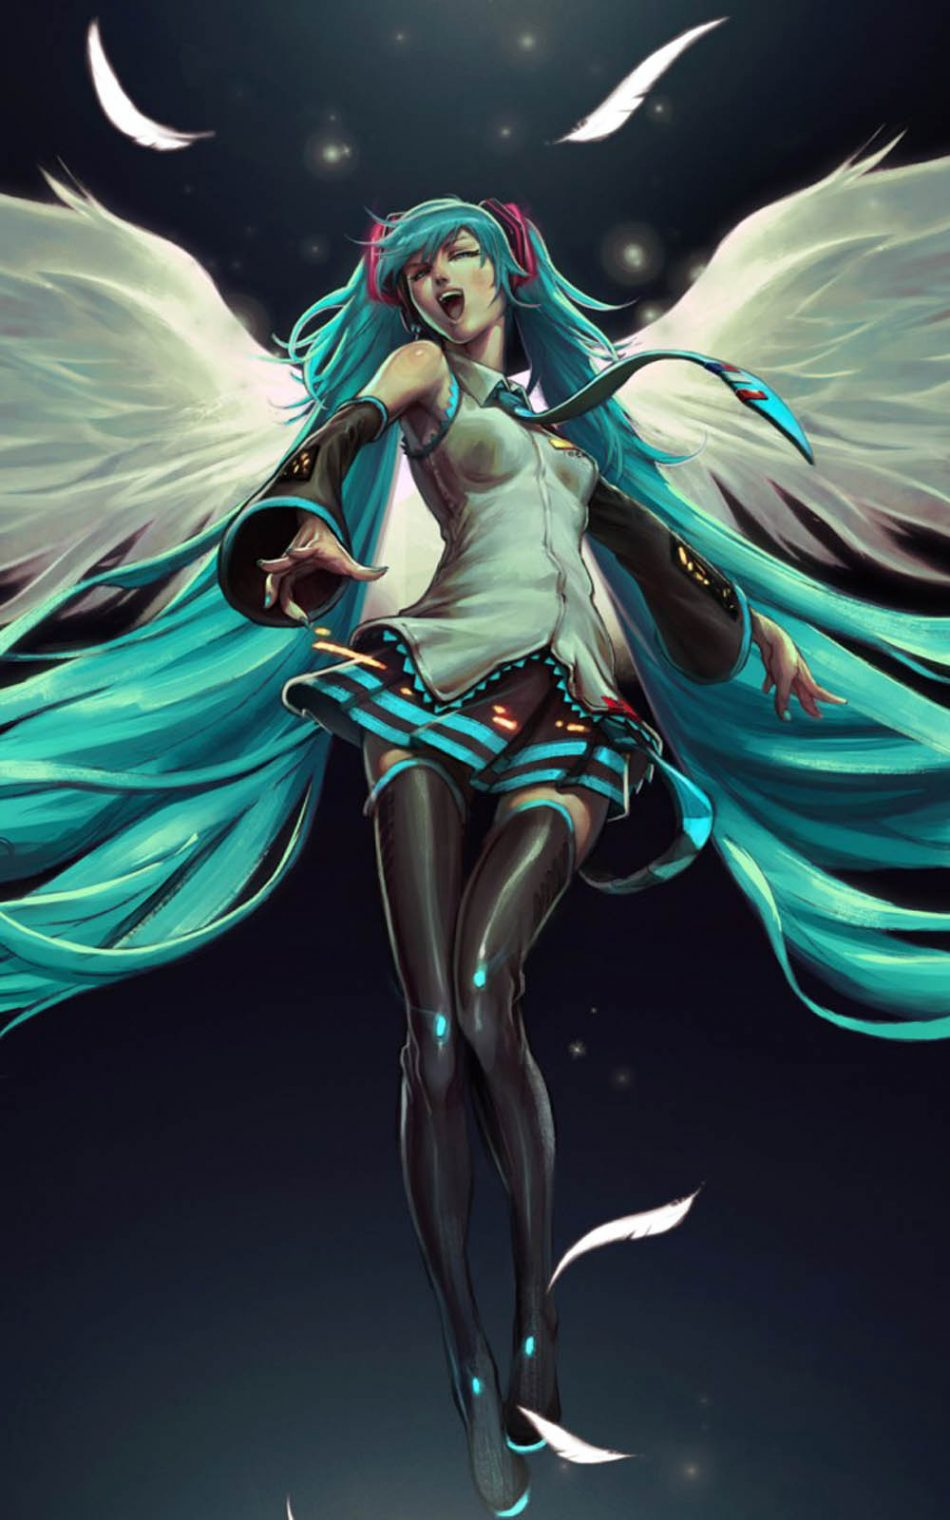 hatsune miku angel download free 100 pure hd quality